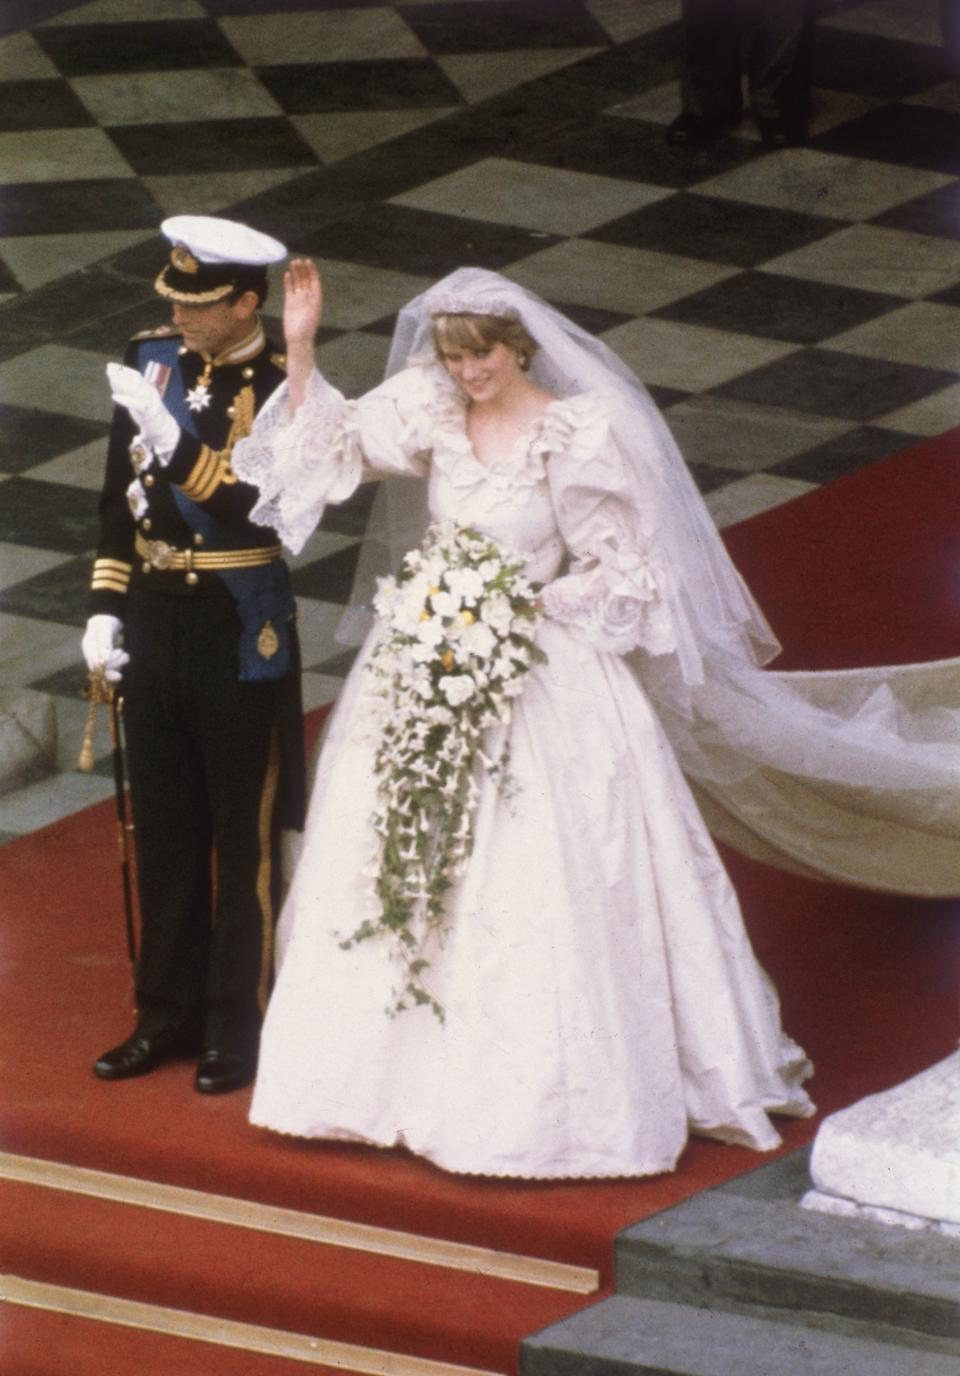 29th July 1981:  Charles, Prince of  Wales, with his wife, Princess Diana (1961 - 1997), on the altar of St Paul's Cathedral during their marriage ceremony.  (Photo by Hulton Archive/Getty Images)